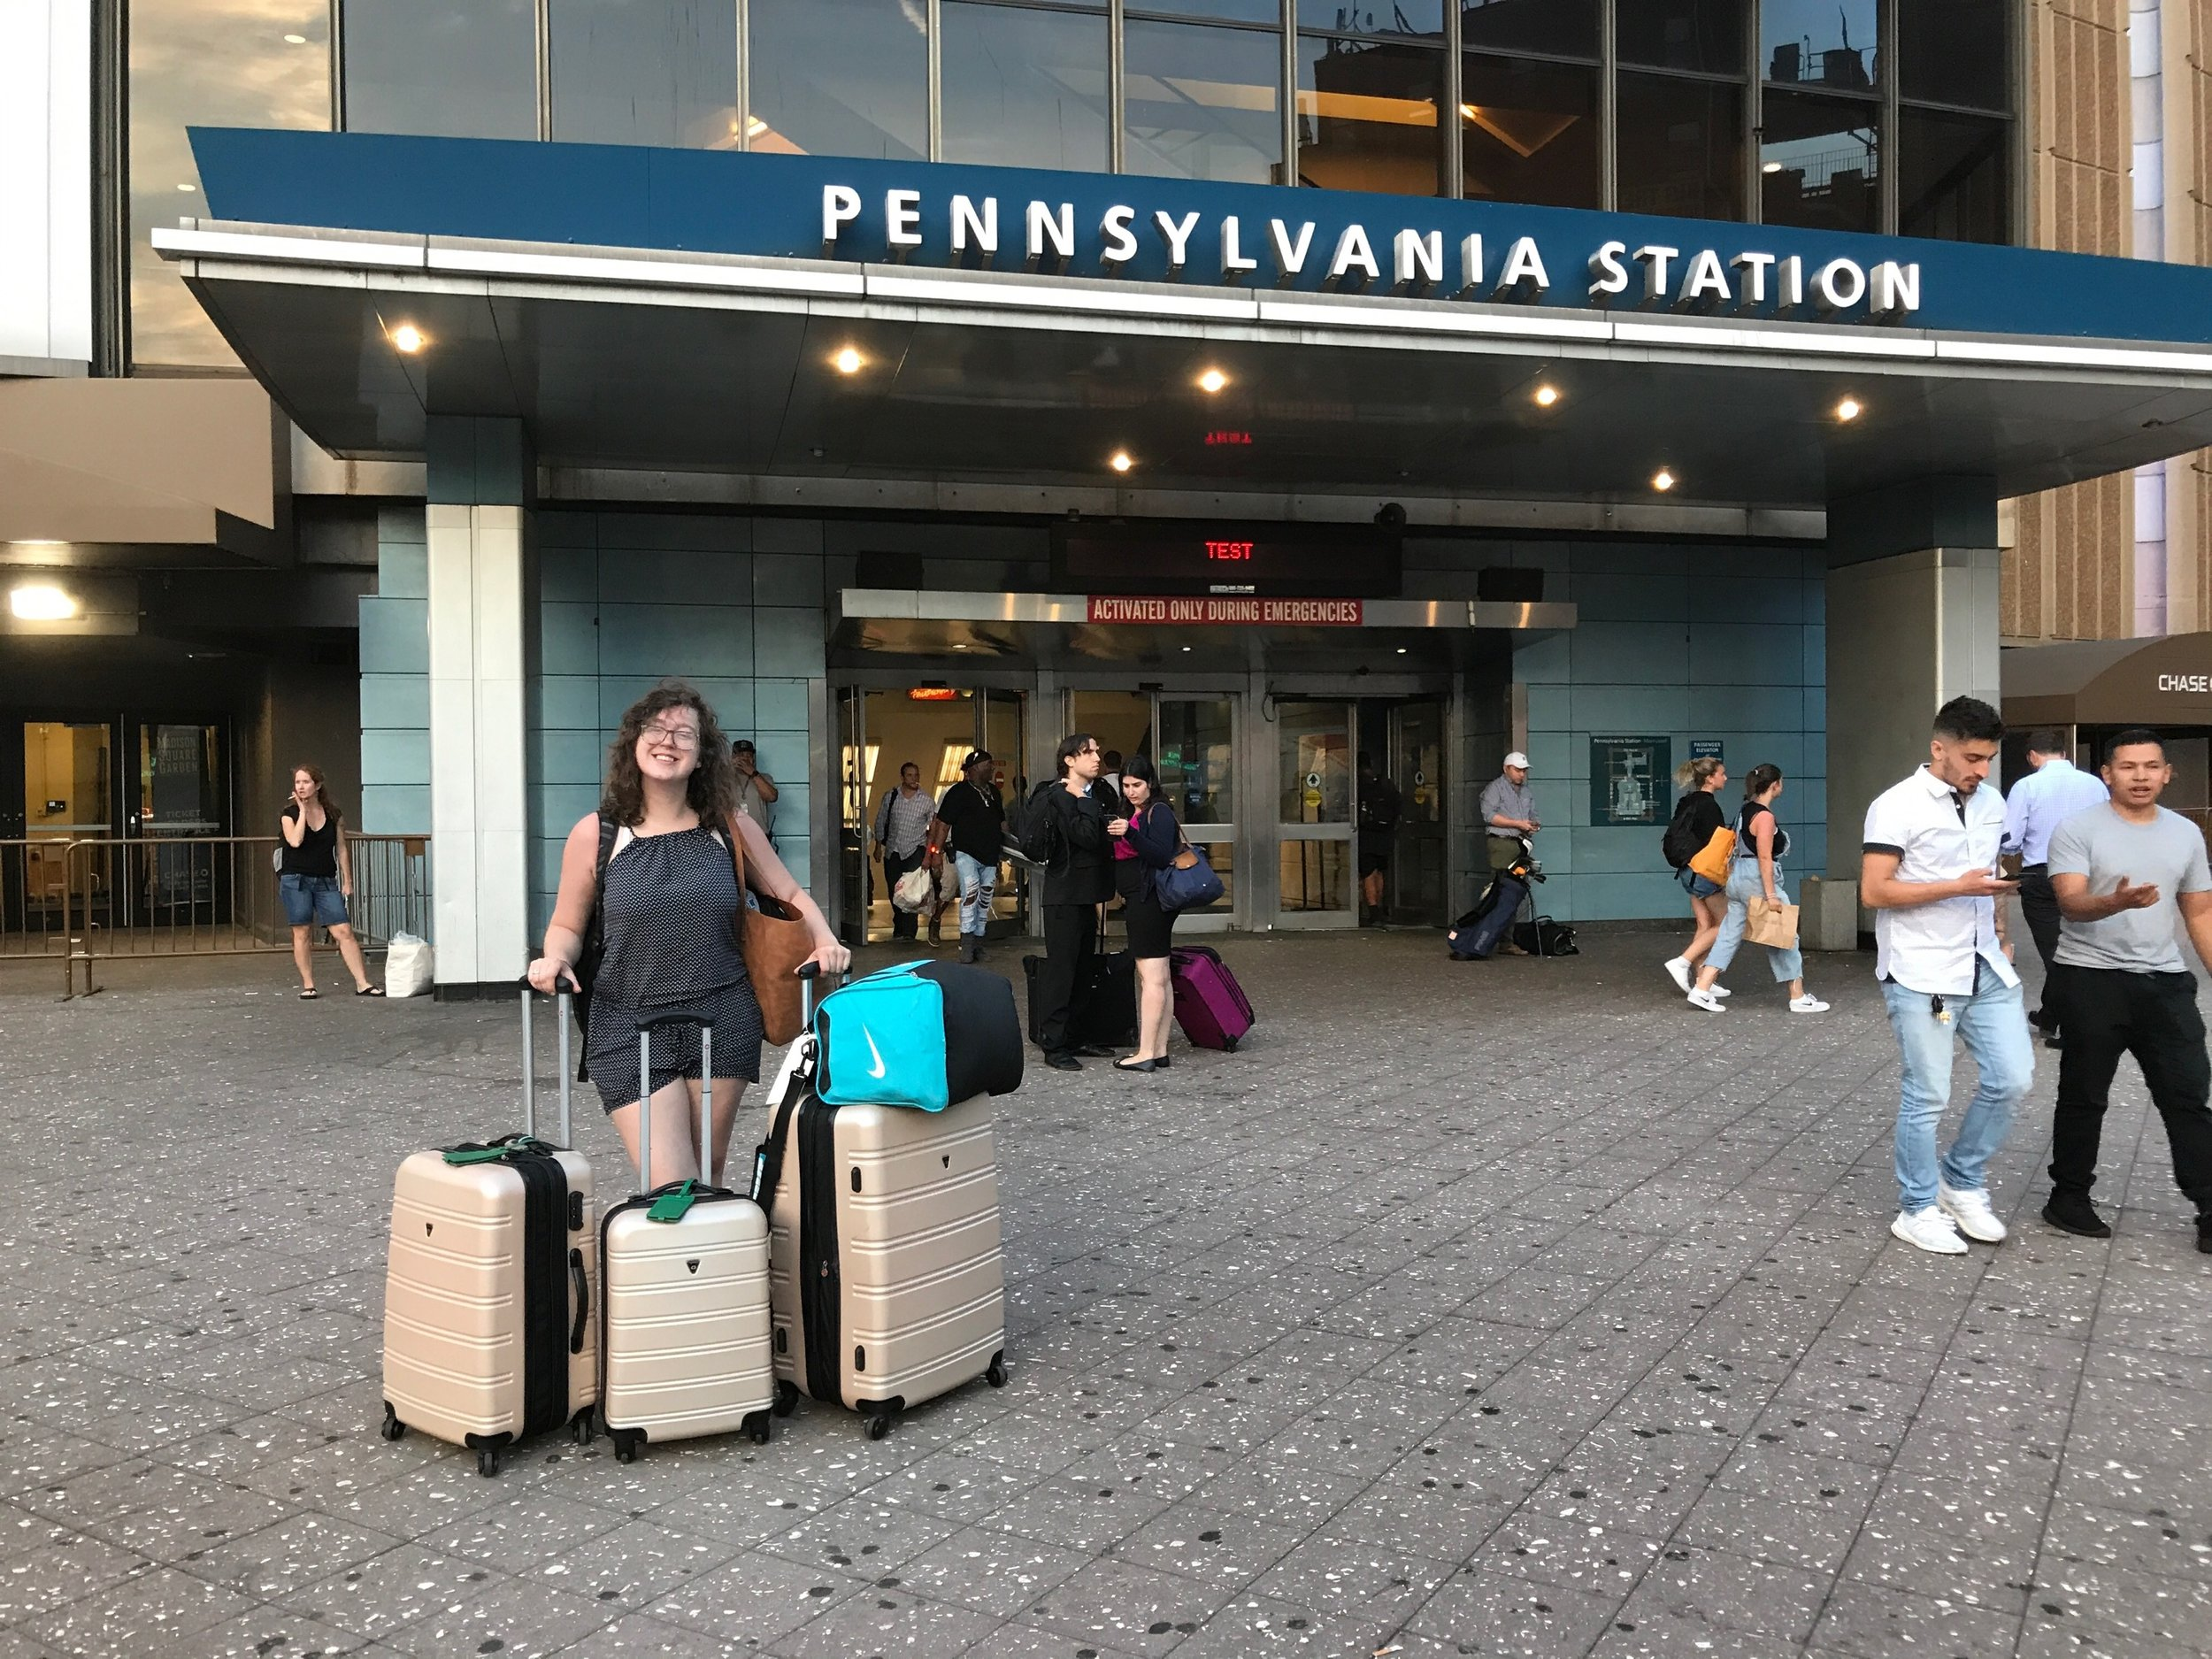 Aug 17–The day I arrived at Penn Station with my bags for the next month. Ready to take on anything and everything the city threw at me. I literally cried when I found my friend I would be staying with. It was so surreal stepping off the train. Photo Credit:  Kaitlin Hatton